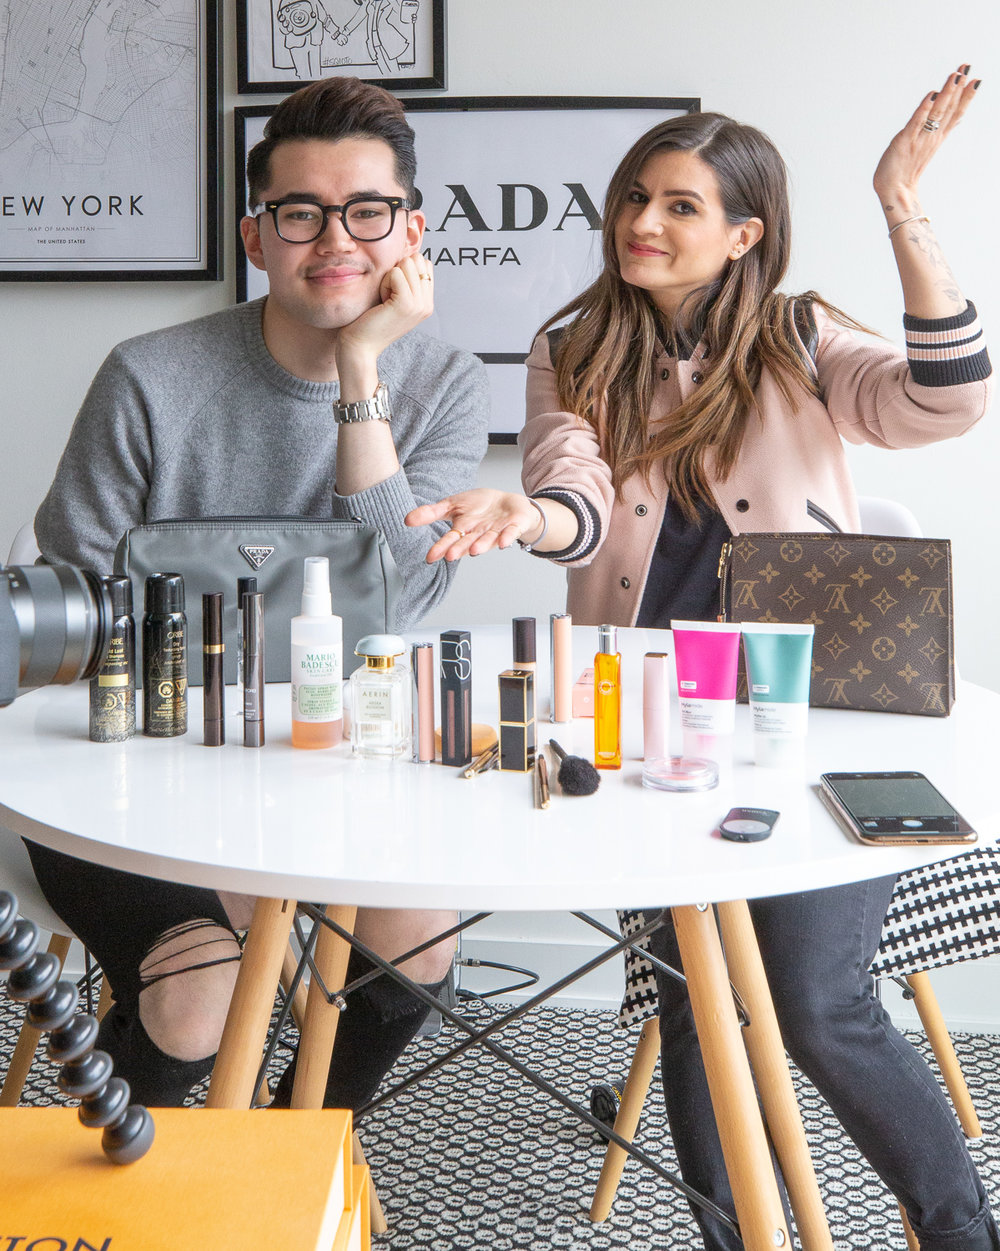 nathalie martin and michael biro - what's in my makeup bag - woahstyle.com_7414.jpg